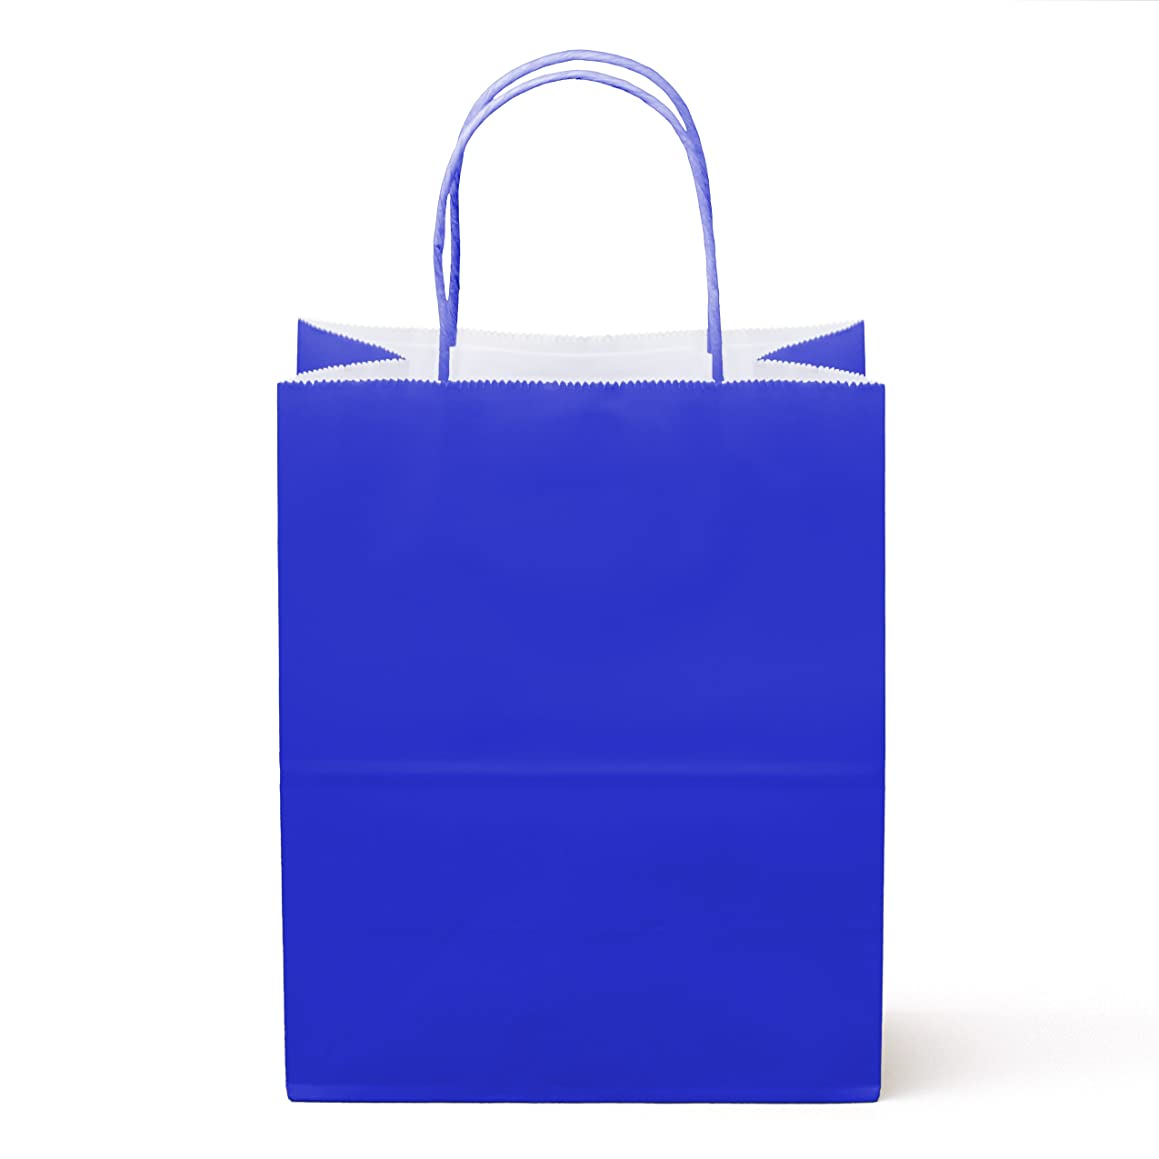 """24 Counts Food Safe Premium Paper and Ink Medium 10"""" X 8"""", Vivid Colored Kraft Bag with Colored Sturdy Handle, Perfect for Goodie Favor DIY Bag, Environmentally Safe (Medium, Royal Blue)"""